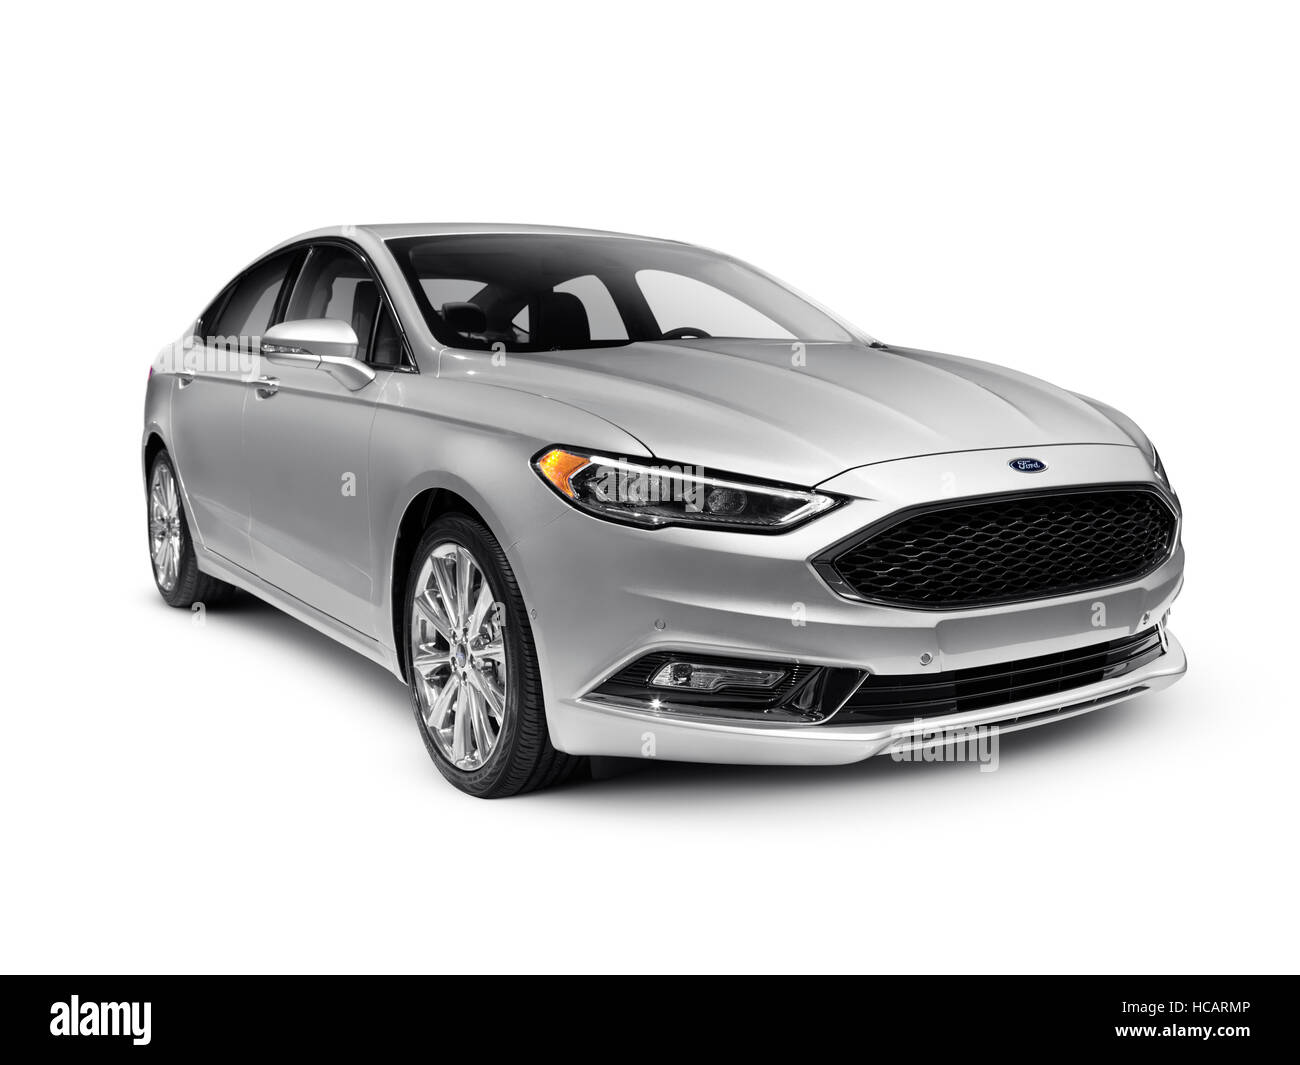 Silver 2017 Ford Fusion mid-size sedan car isolated on white background with clipping path - Stock Image